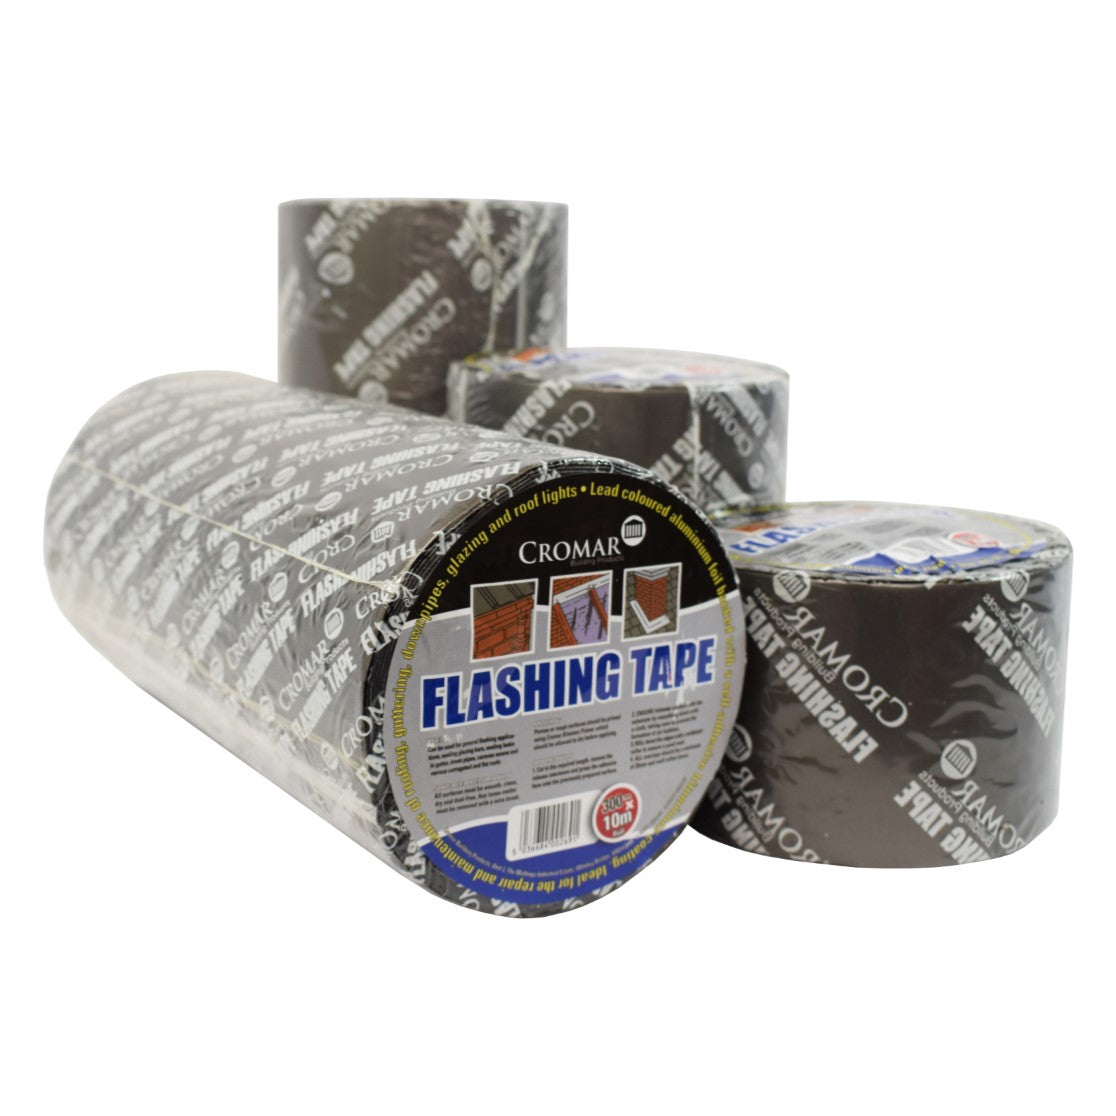 Cromar Lead Flashing Tape Next Day Delivery Bulk